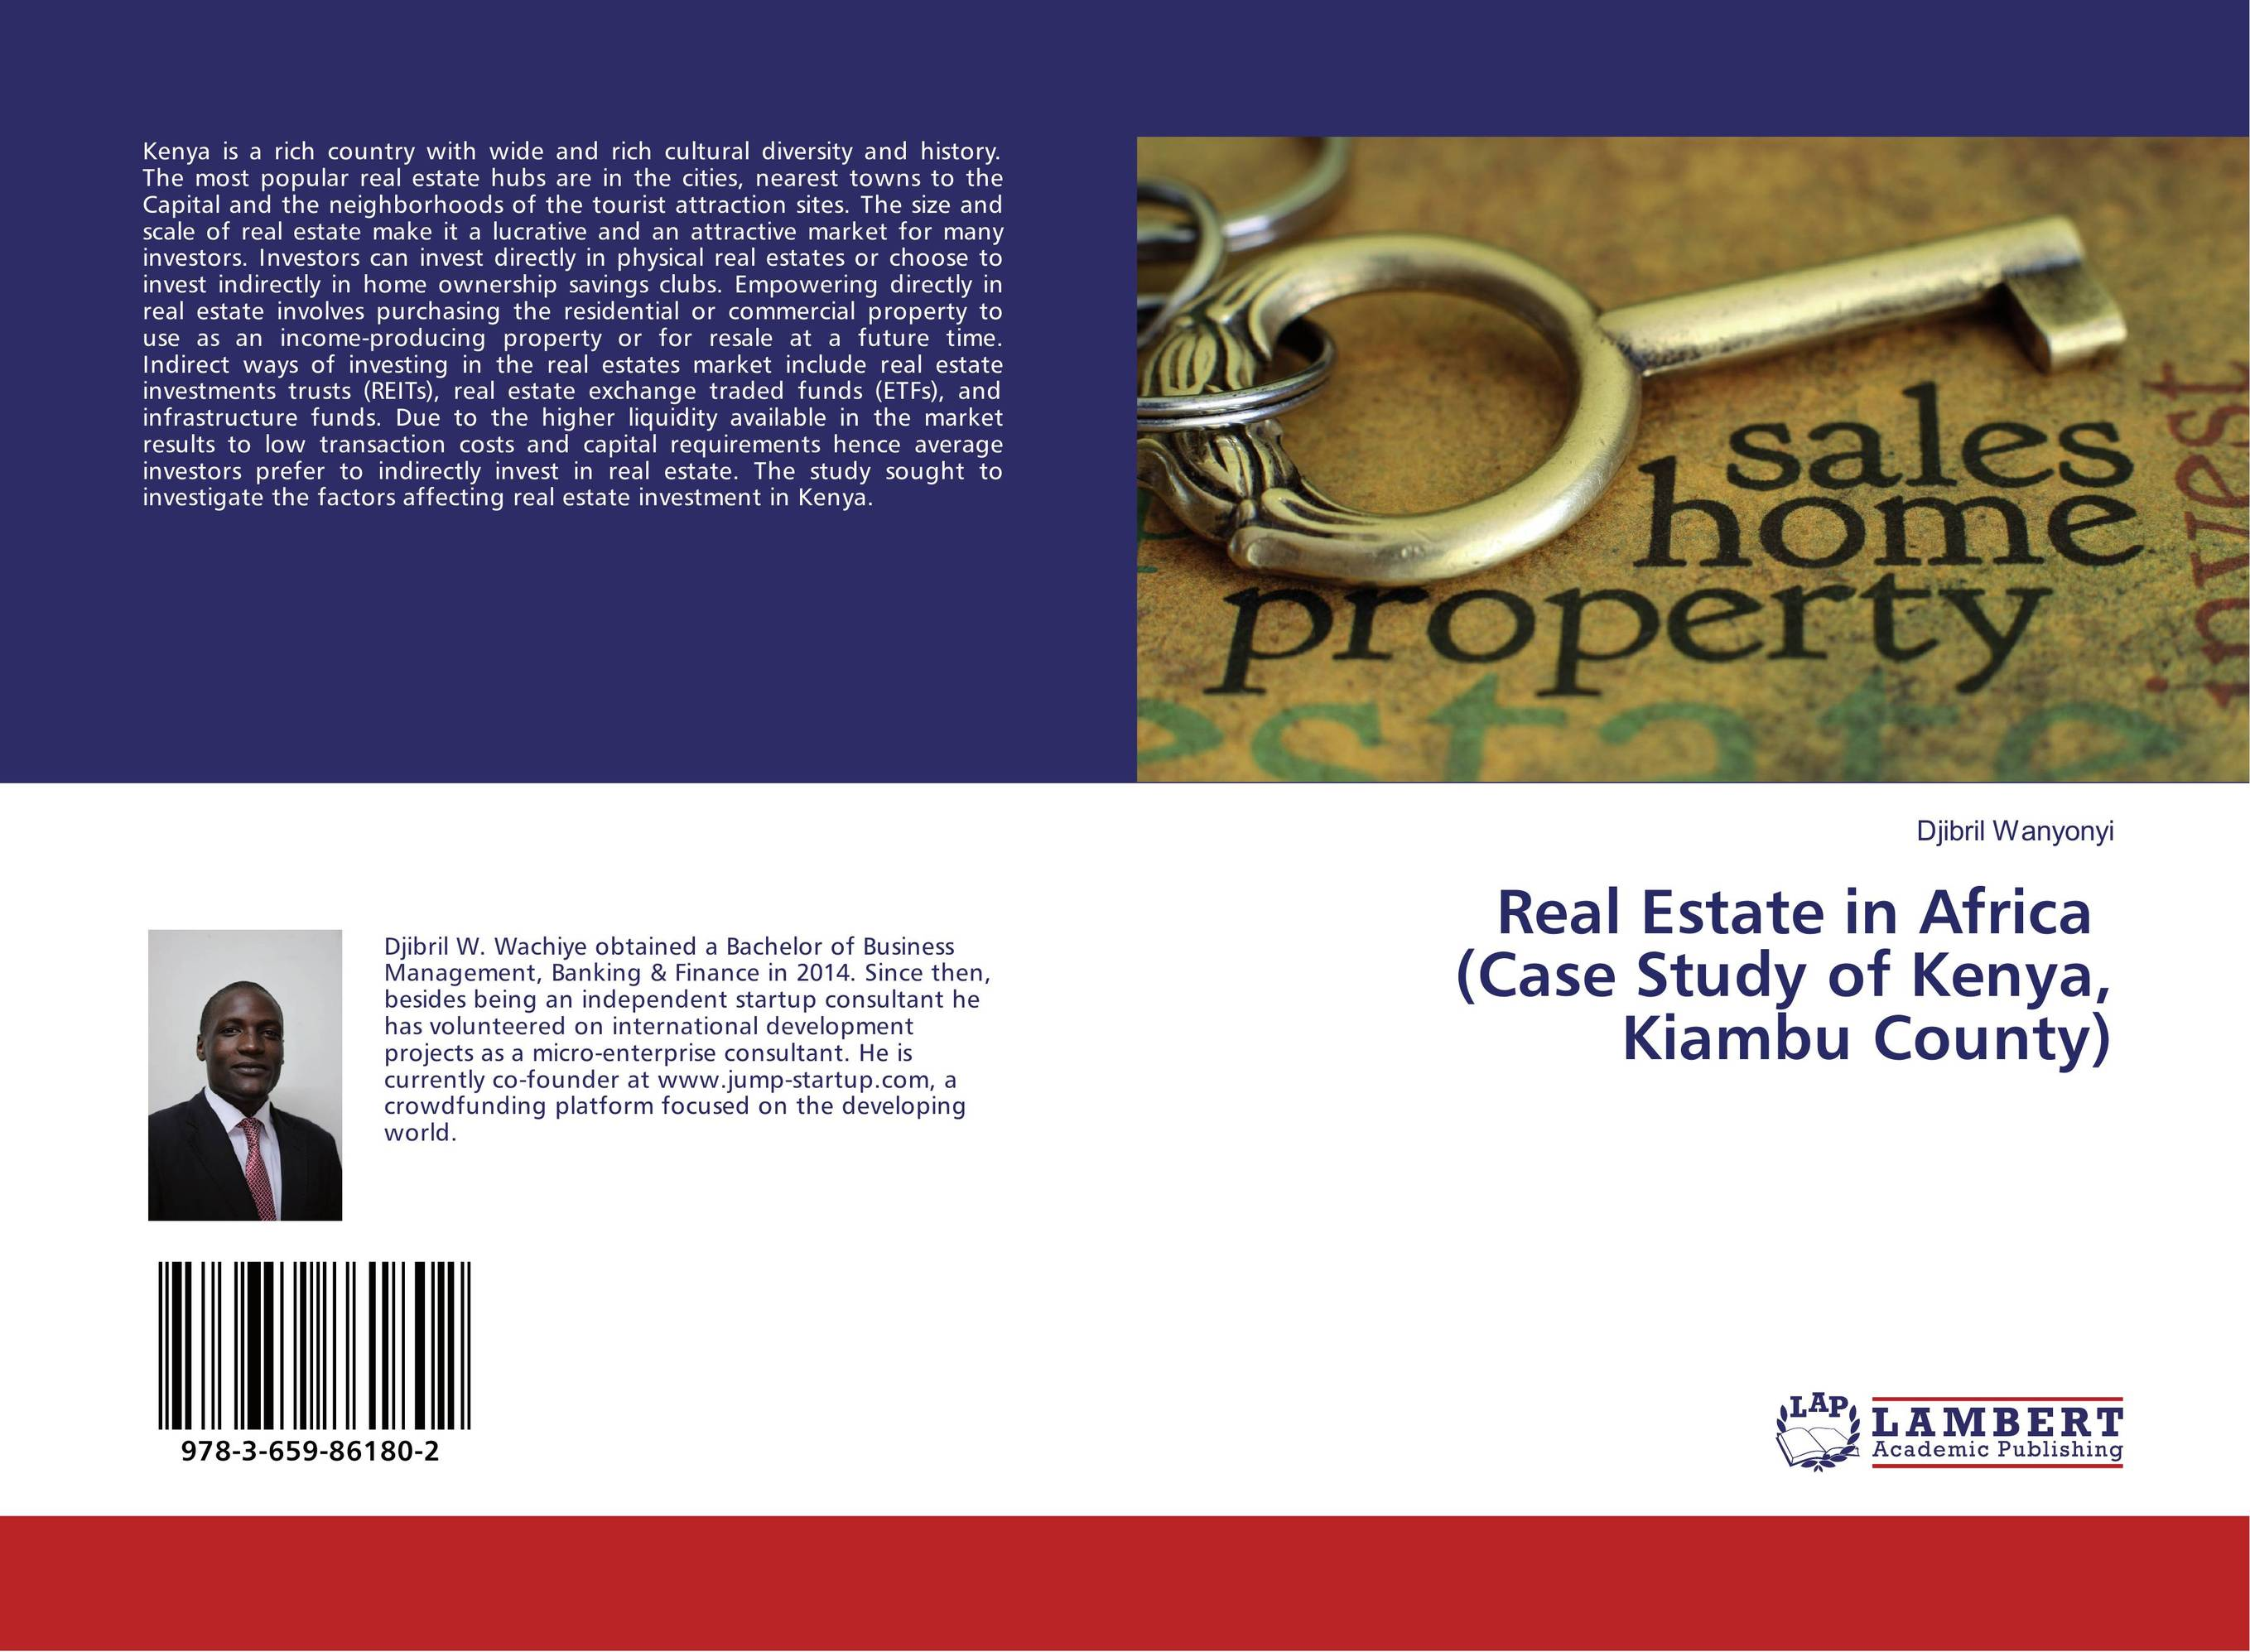 Real Estate in Africa (Case Study of Kenya, Kiambu County)